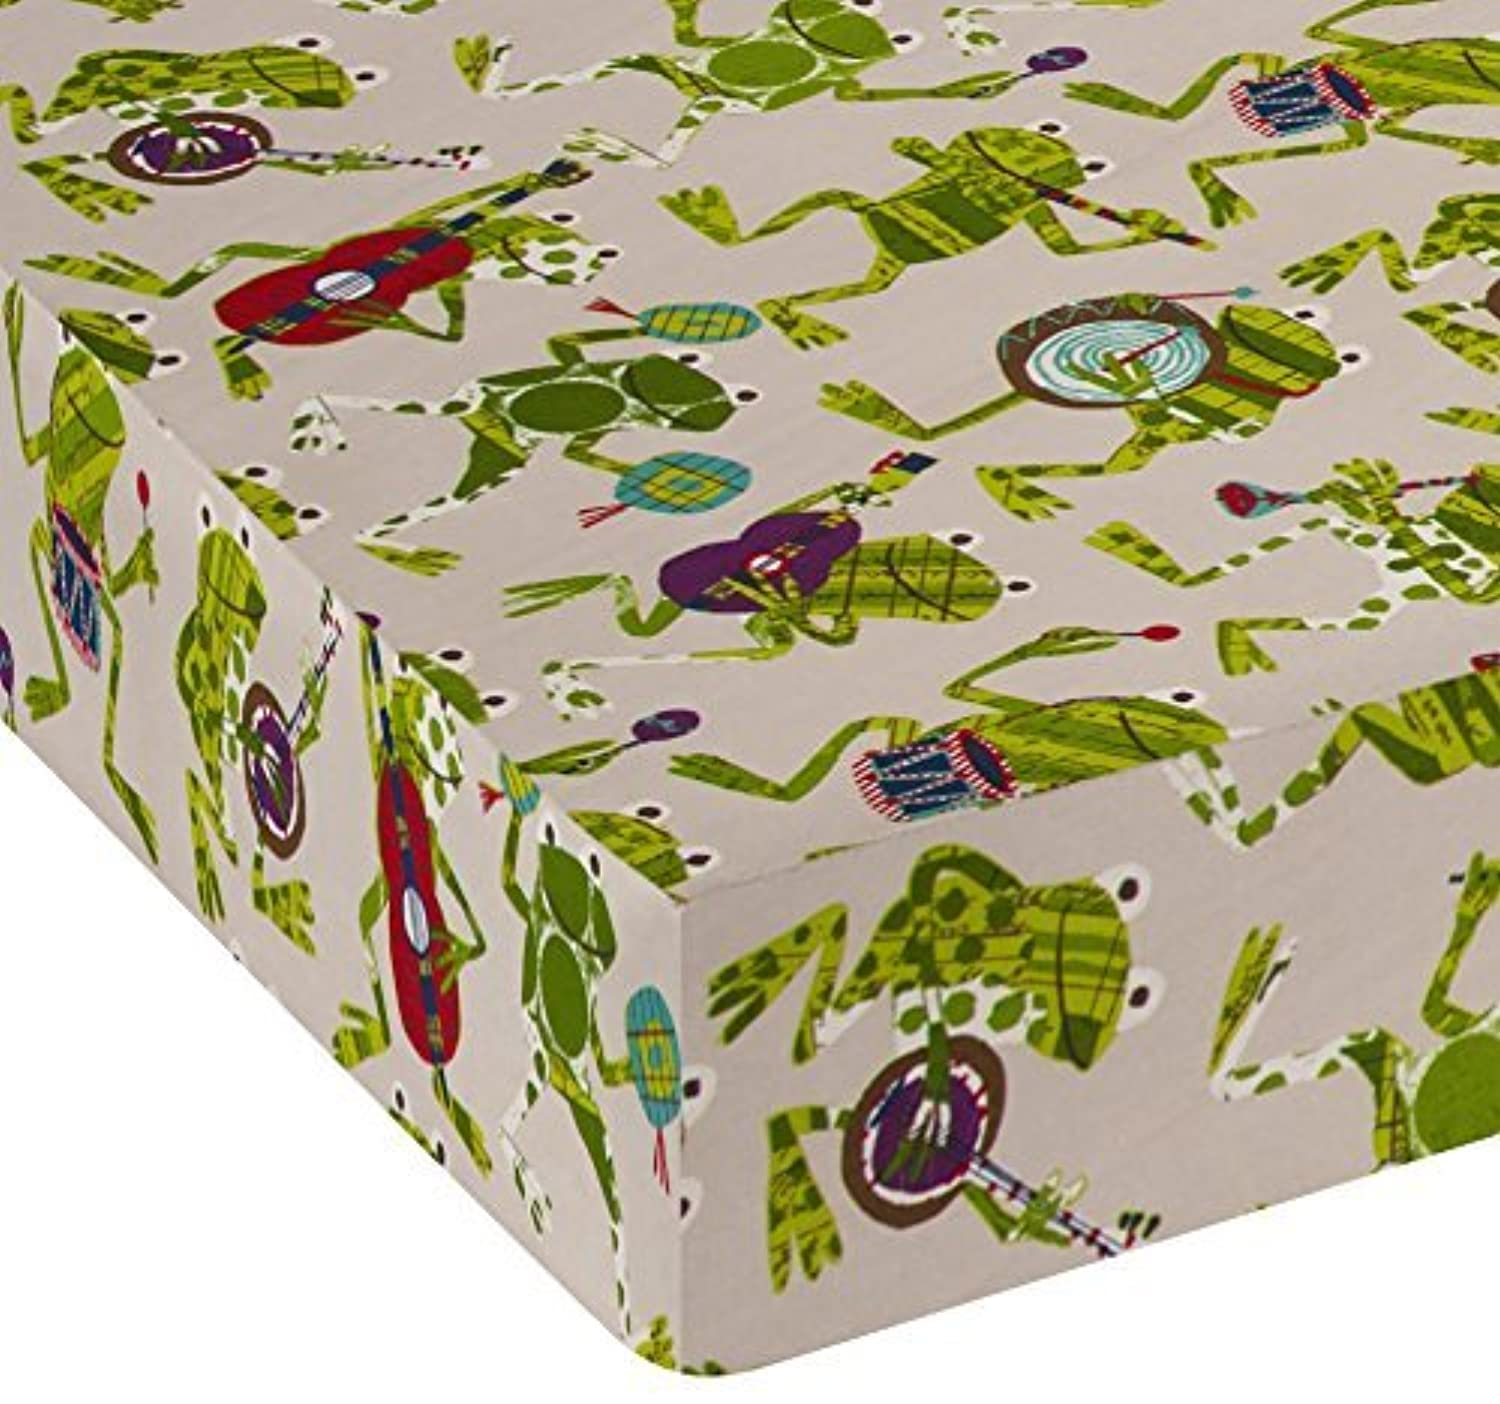 Sweet Potato Frog Song Fitted Sheet-Frogs Green/Brown/Cream crib [並行輸入品]